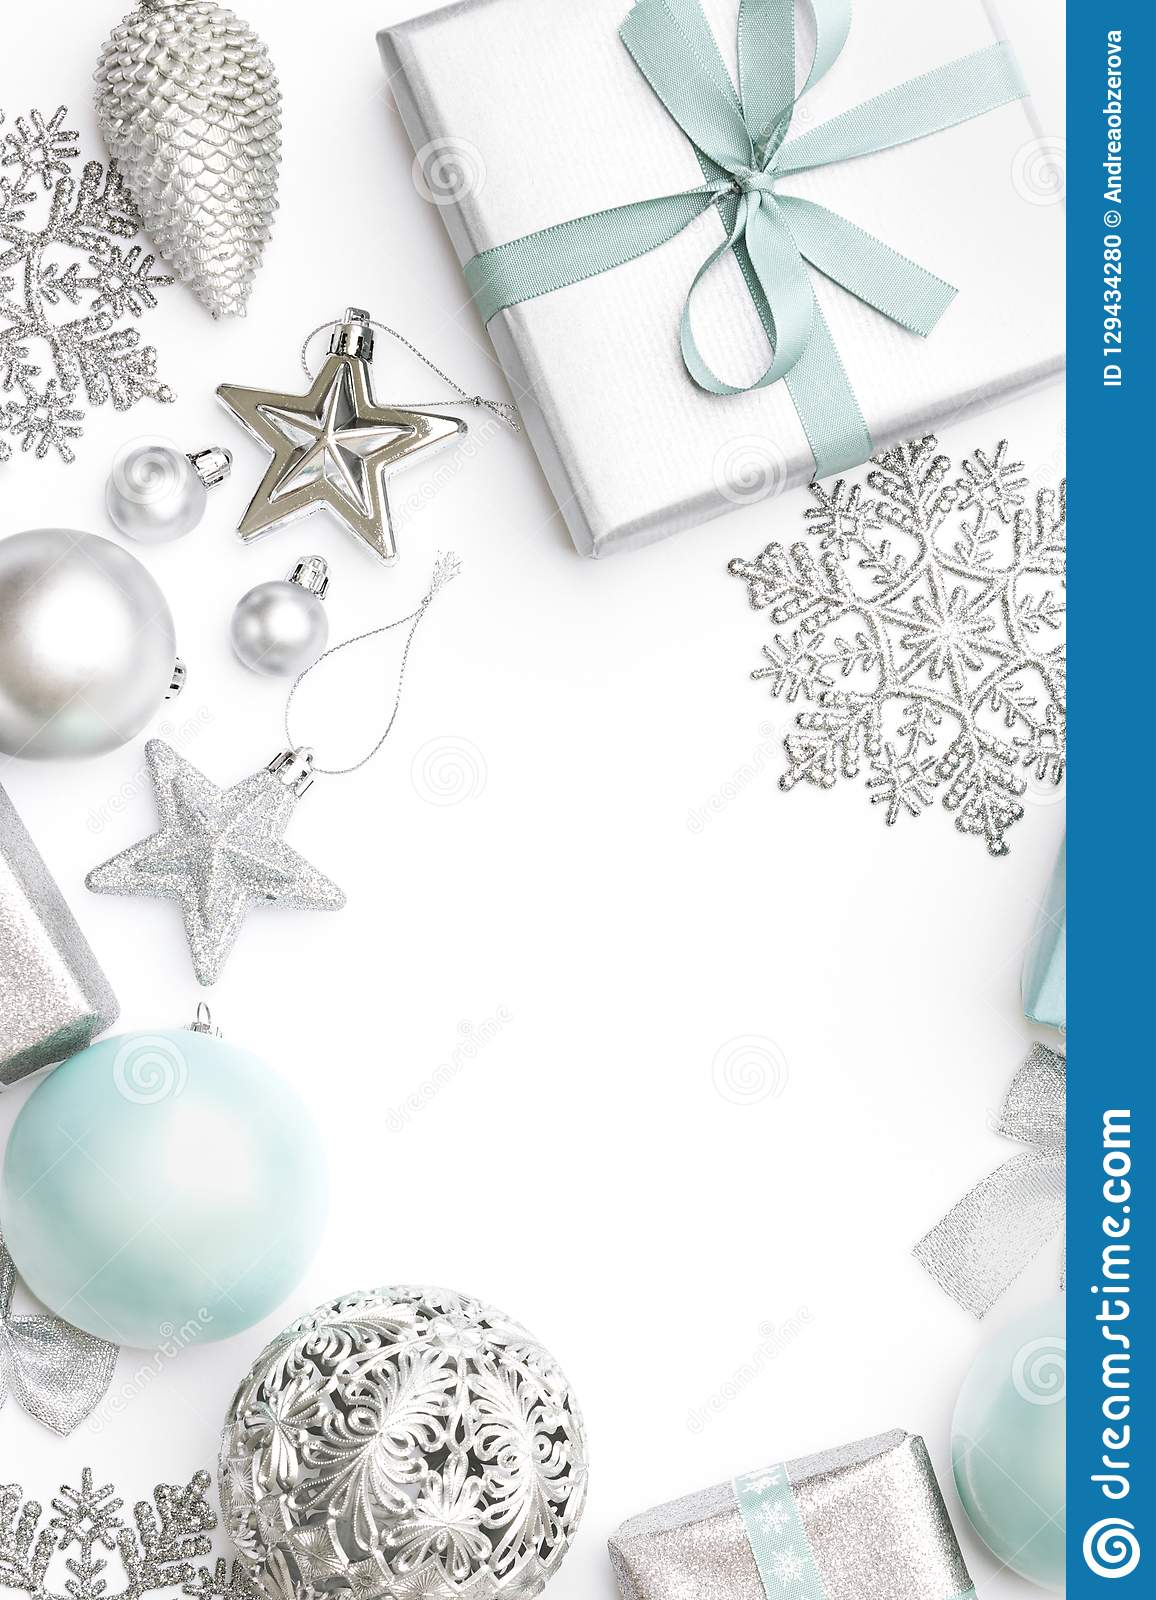 Silver and pastel blue christmas gifts, ornaments and decorations isolated on white background. Christmas border.